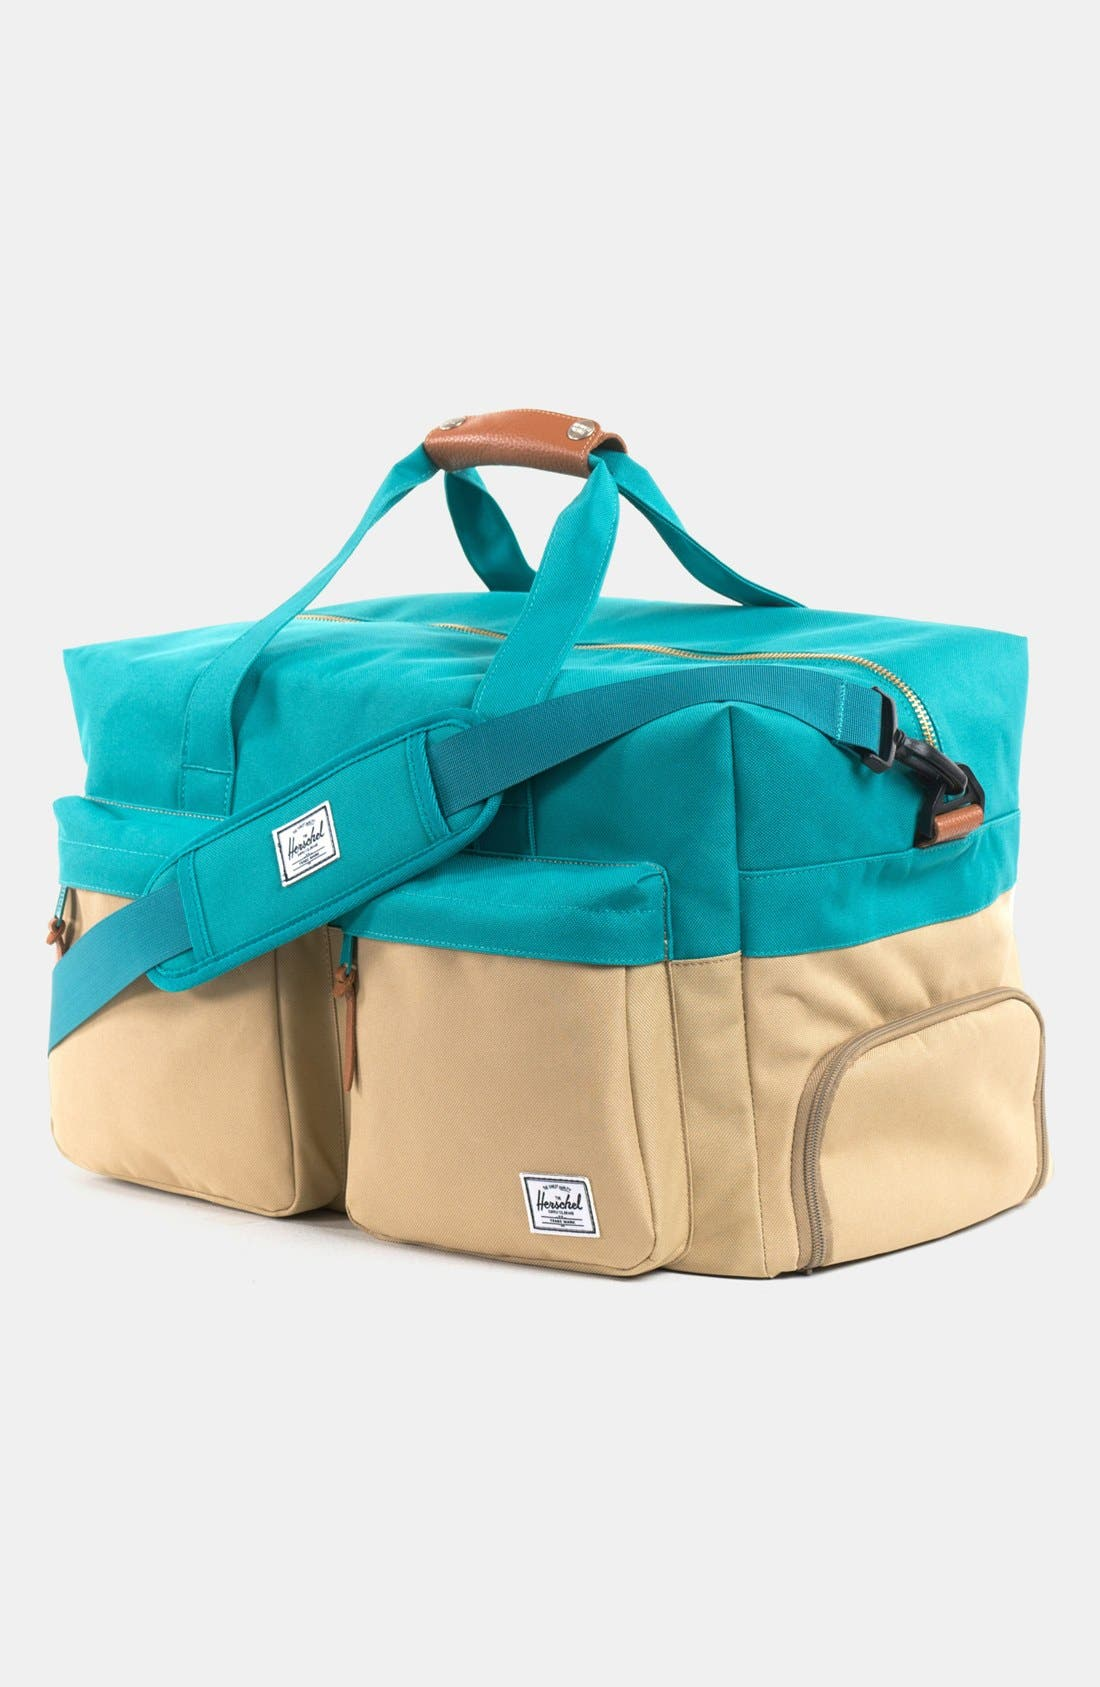 Main Image - Herschel Supply Co. 'Walton' Duffel